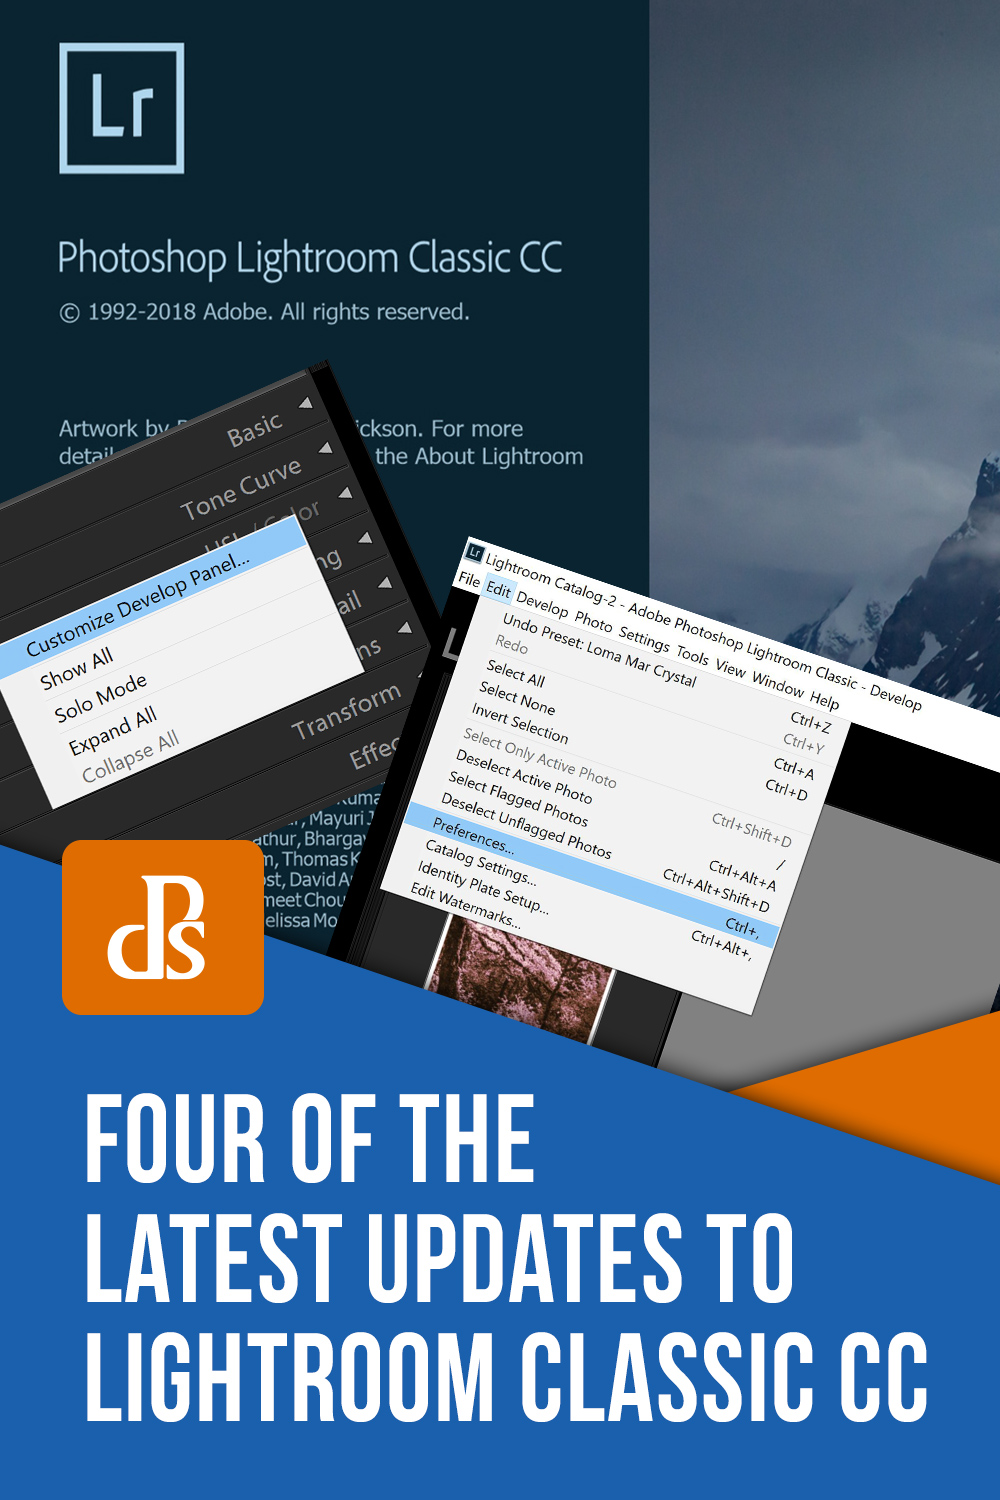 Four of the Latest Updates to Lightroom Classic CC